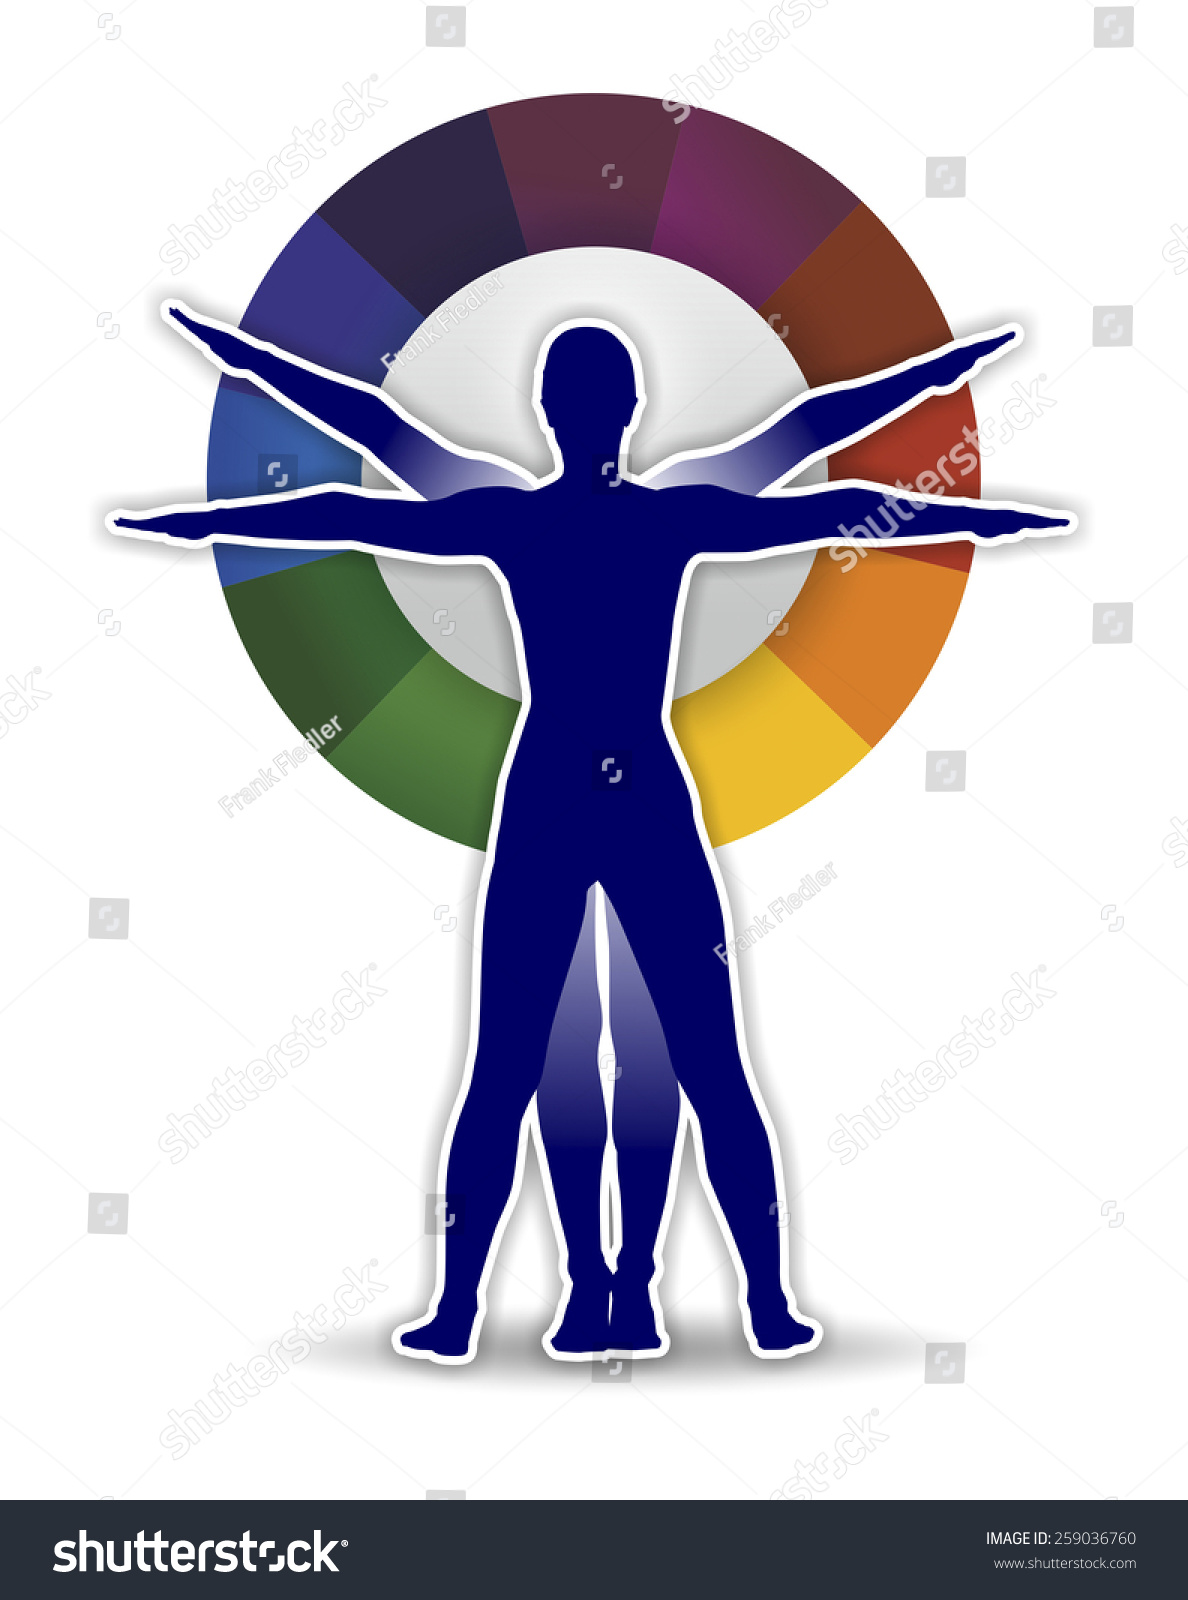 Royalty Free Stock Illustration Of Study Human Body Proportions